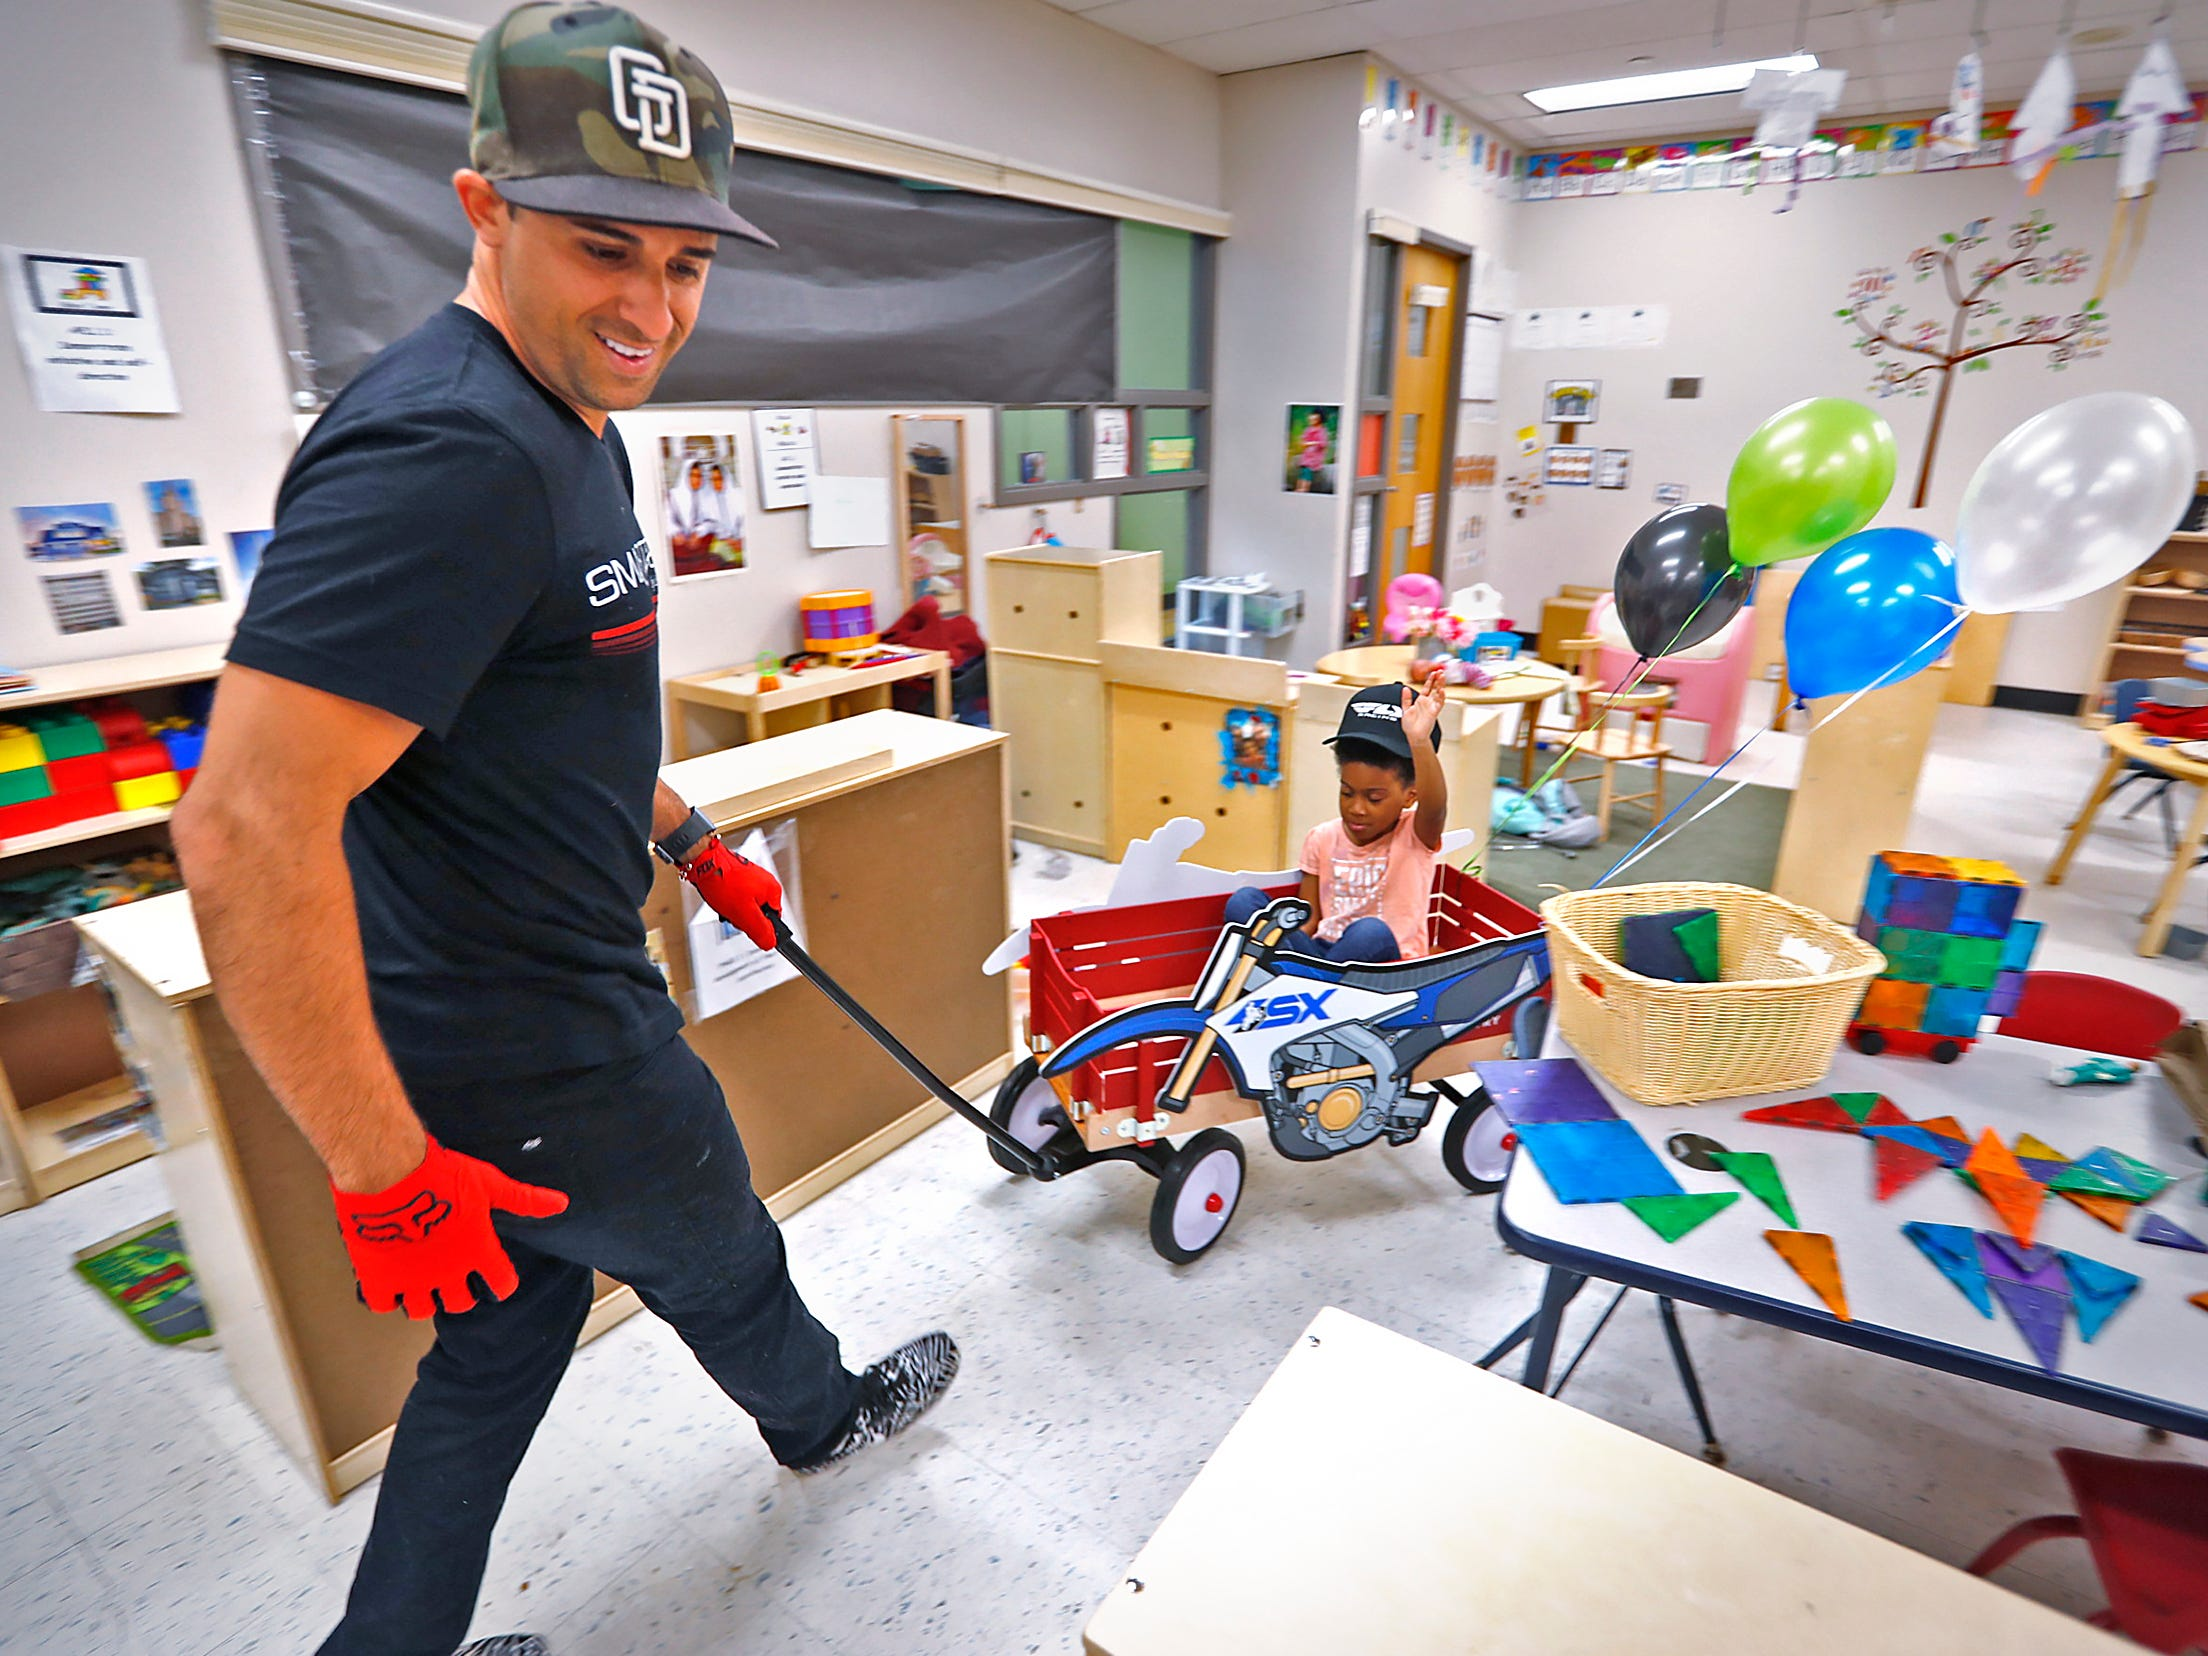 Roselynn Arnold puts her hands up while getting a wagon ride from Supercross racer Mike Alessi visiting with kids at Day Early Learning Center, Thursday, March 14, 2019.  Alessi provided Supercross rider jerseys and hats for the kids and gave wagon rides, on a break before the upcoming Supercross race.